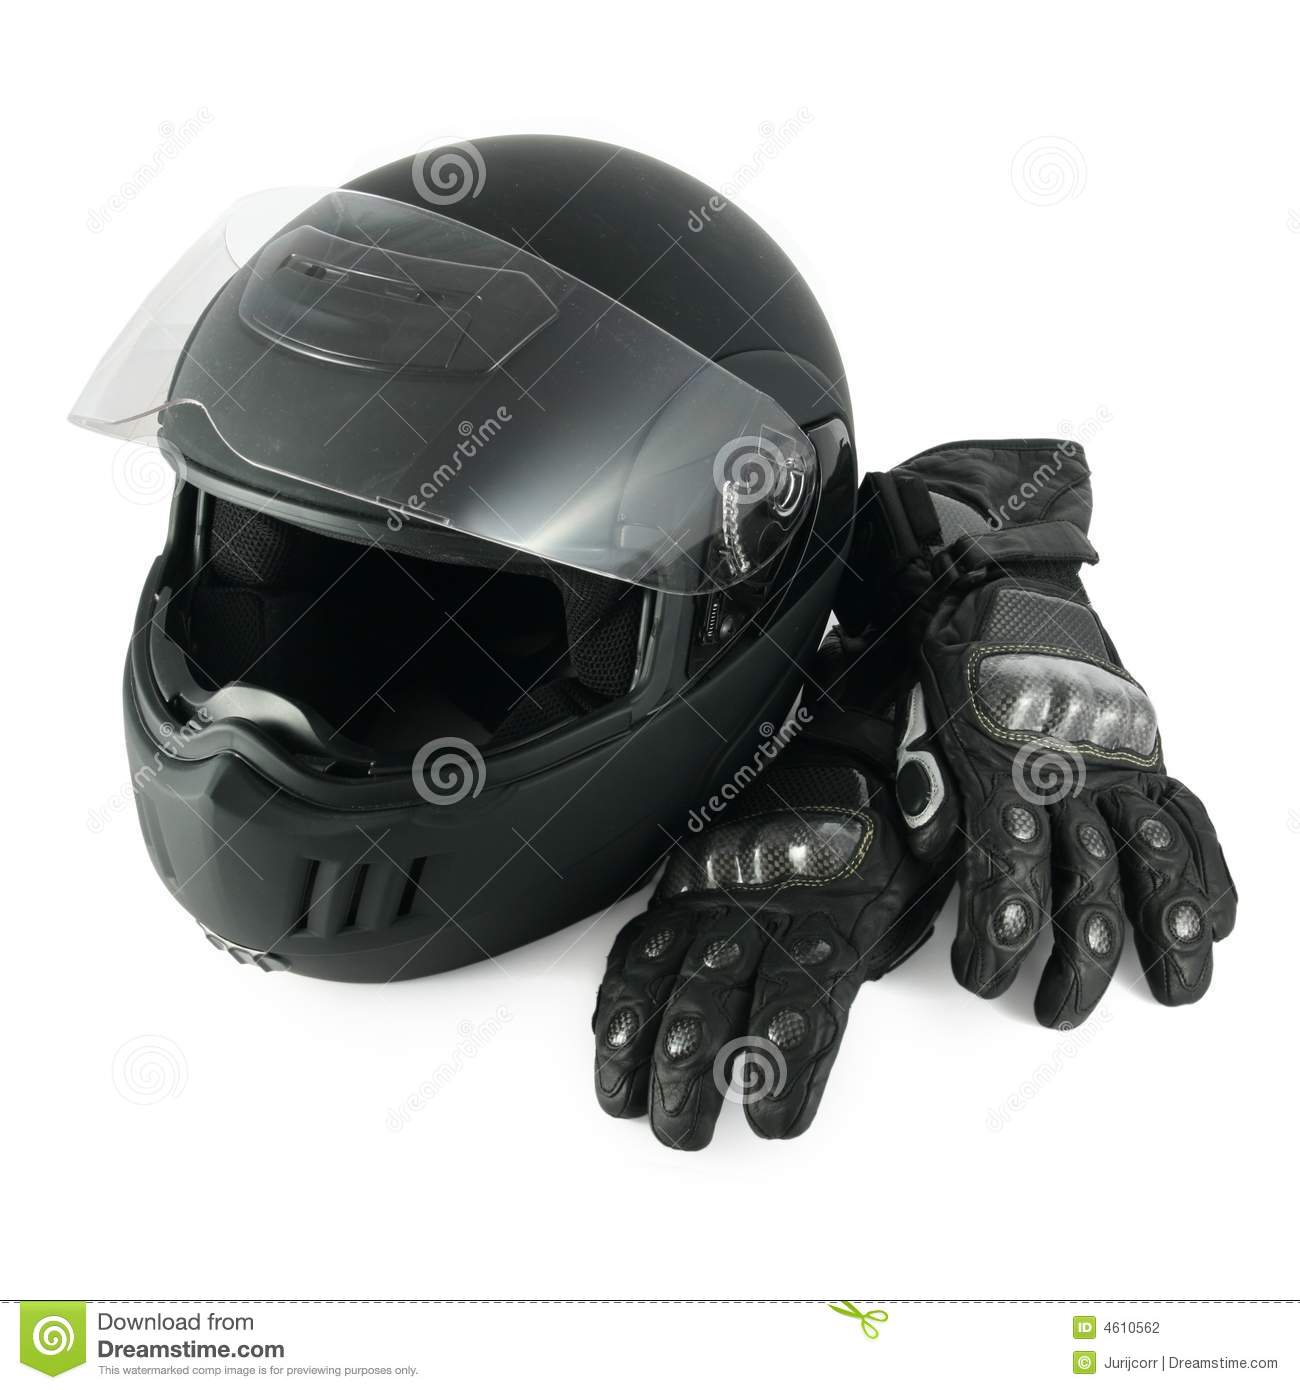 Carbon Fiber Motorcycle Helmets >> Motorcycle Helmet And Gloves Stock Photography - Image: 4610562